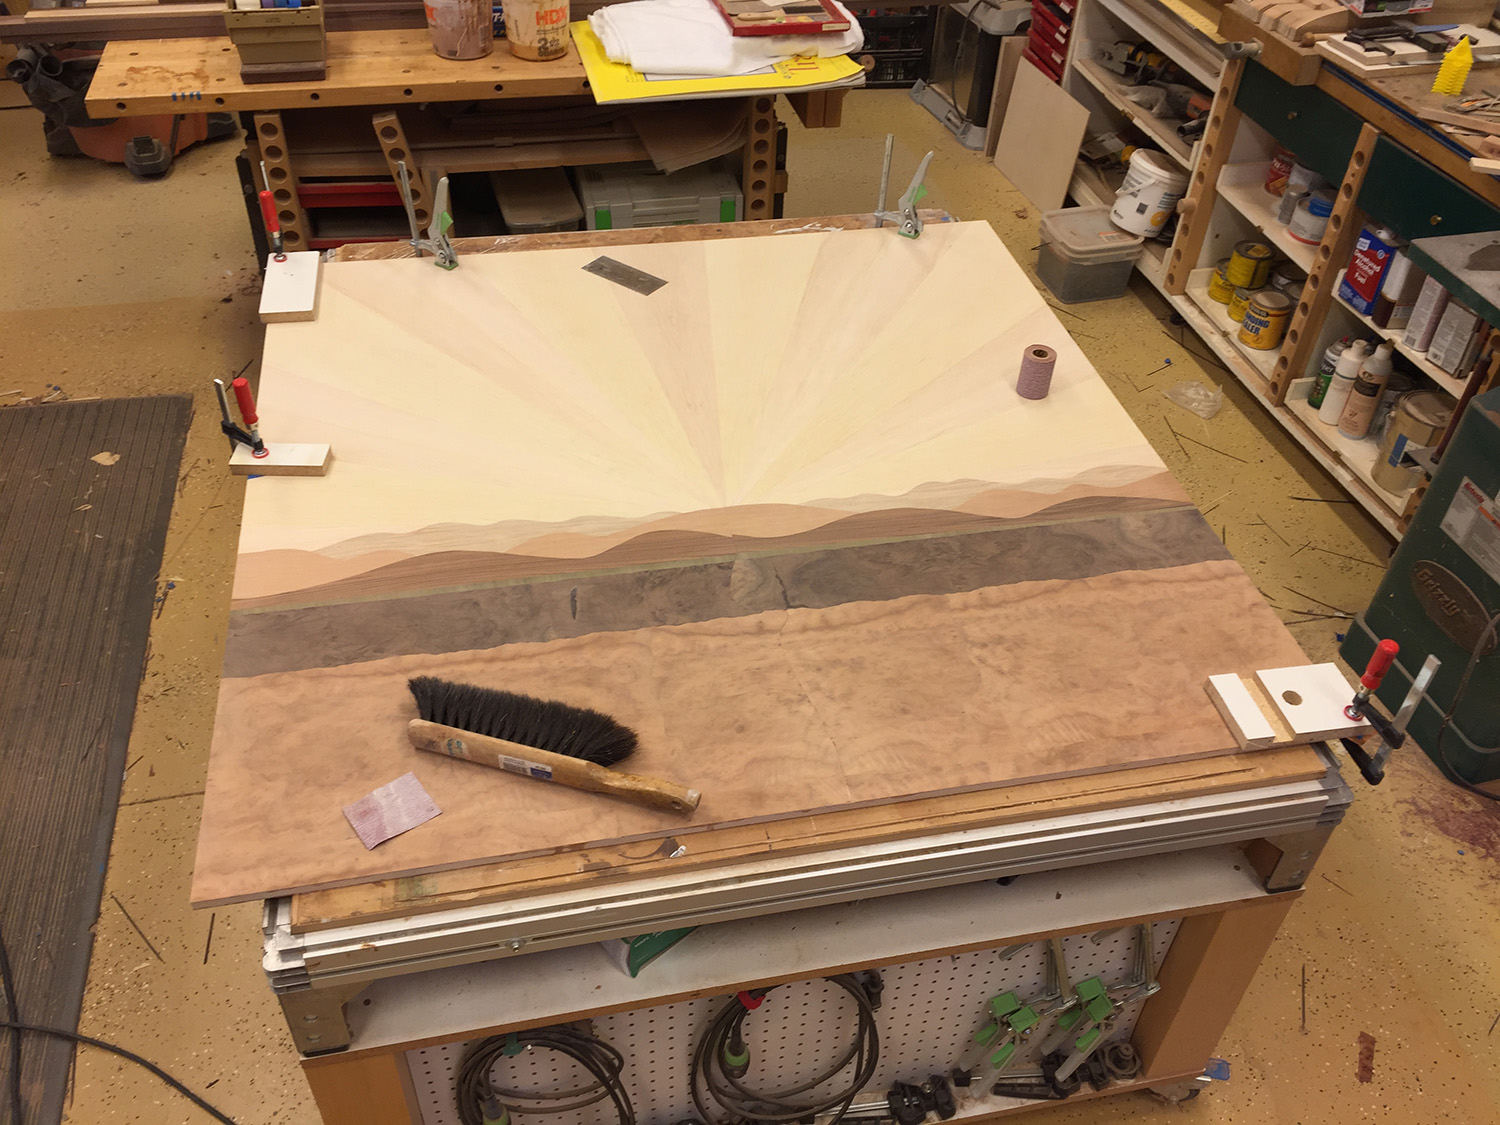 Sanding and making repairs to loose edges.